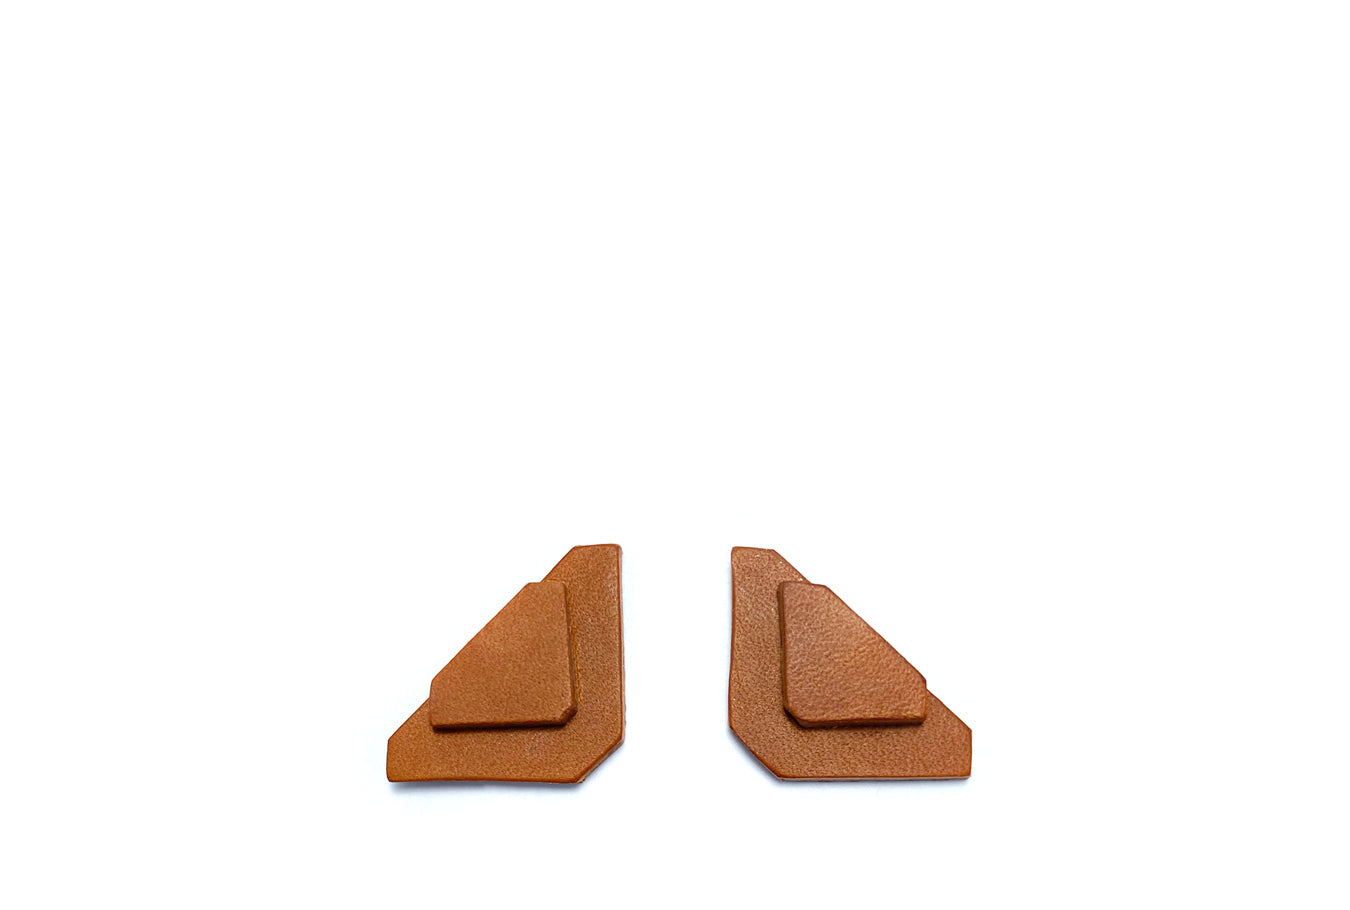 Brown Asci Earrings